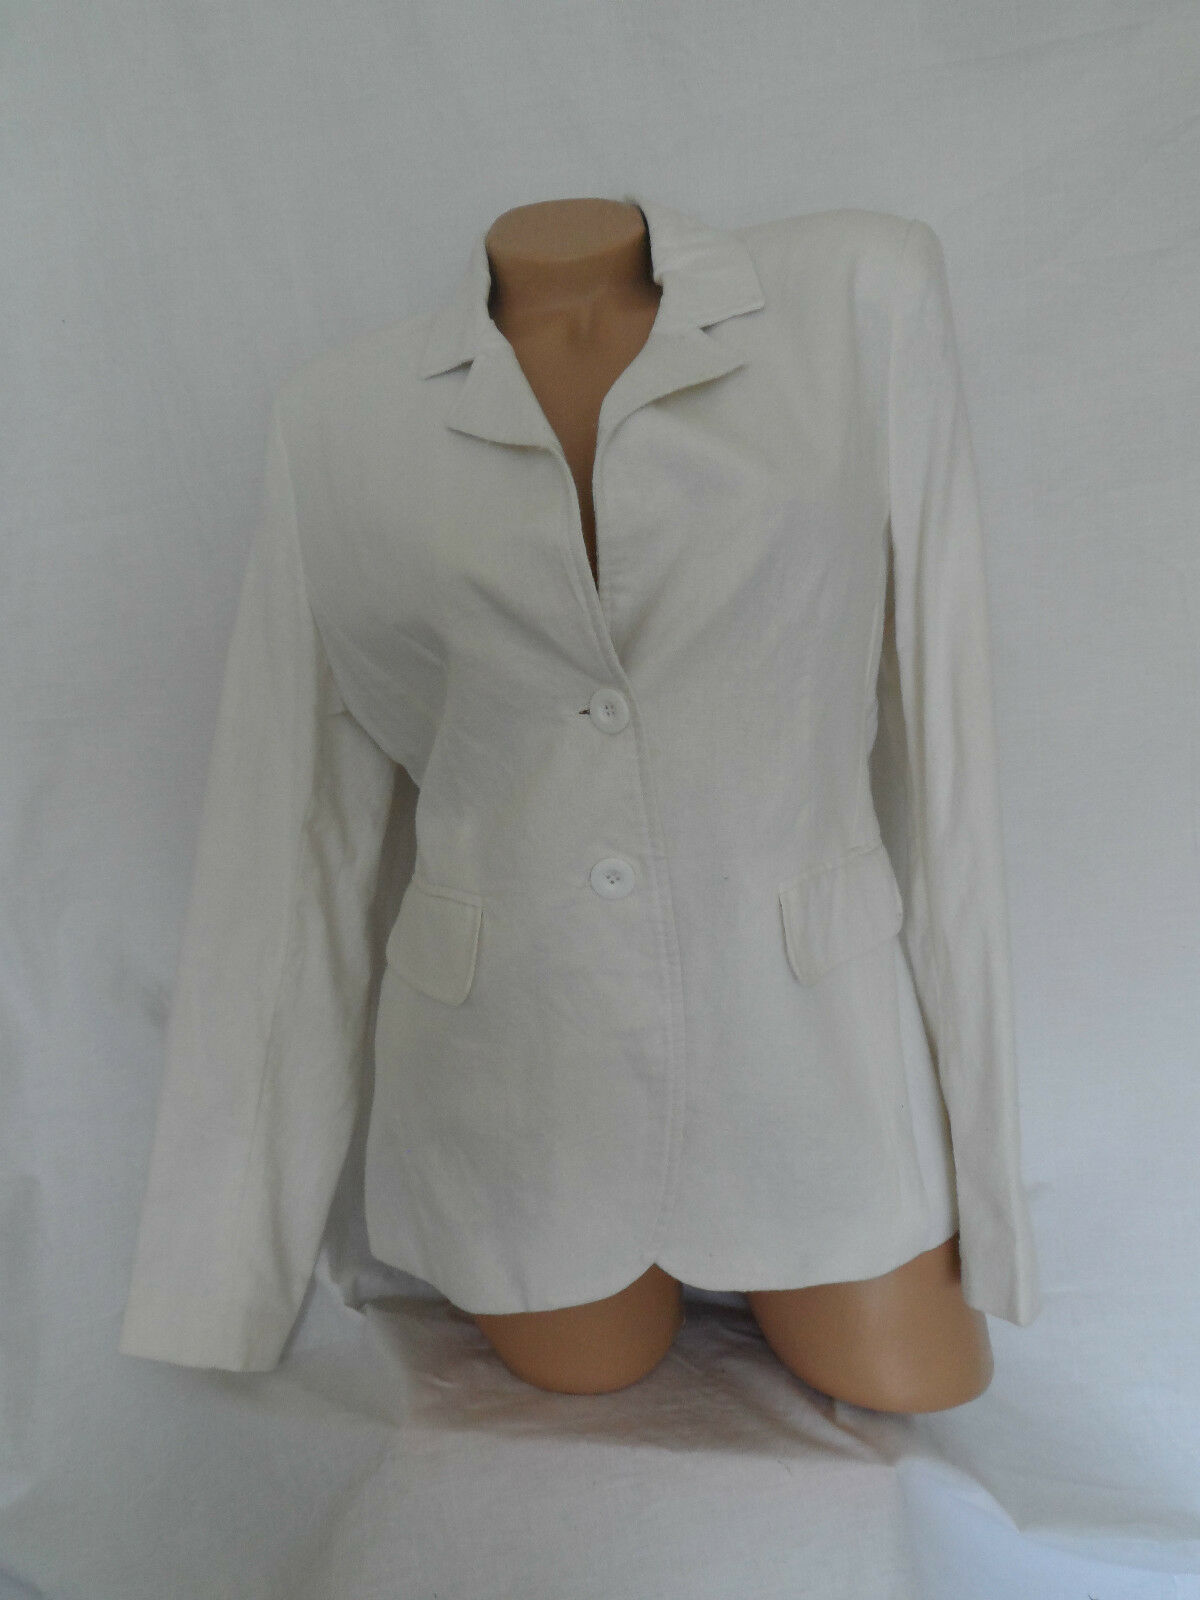 NEW WOMAN'S LADIES COTTON LINEN BLEND FULLY LINED SMART JACKET IN OFF WHITE